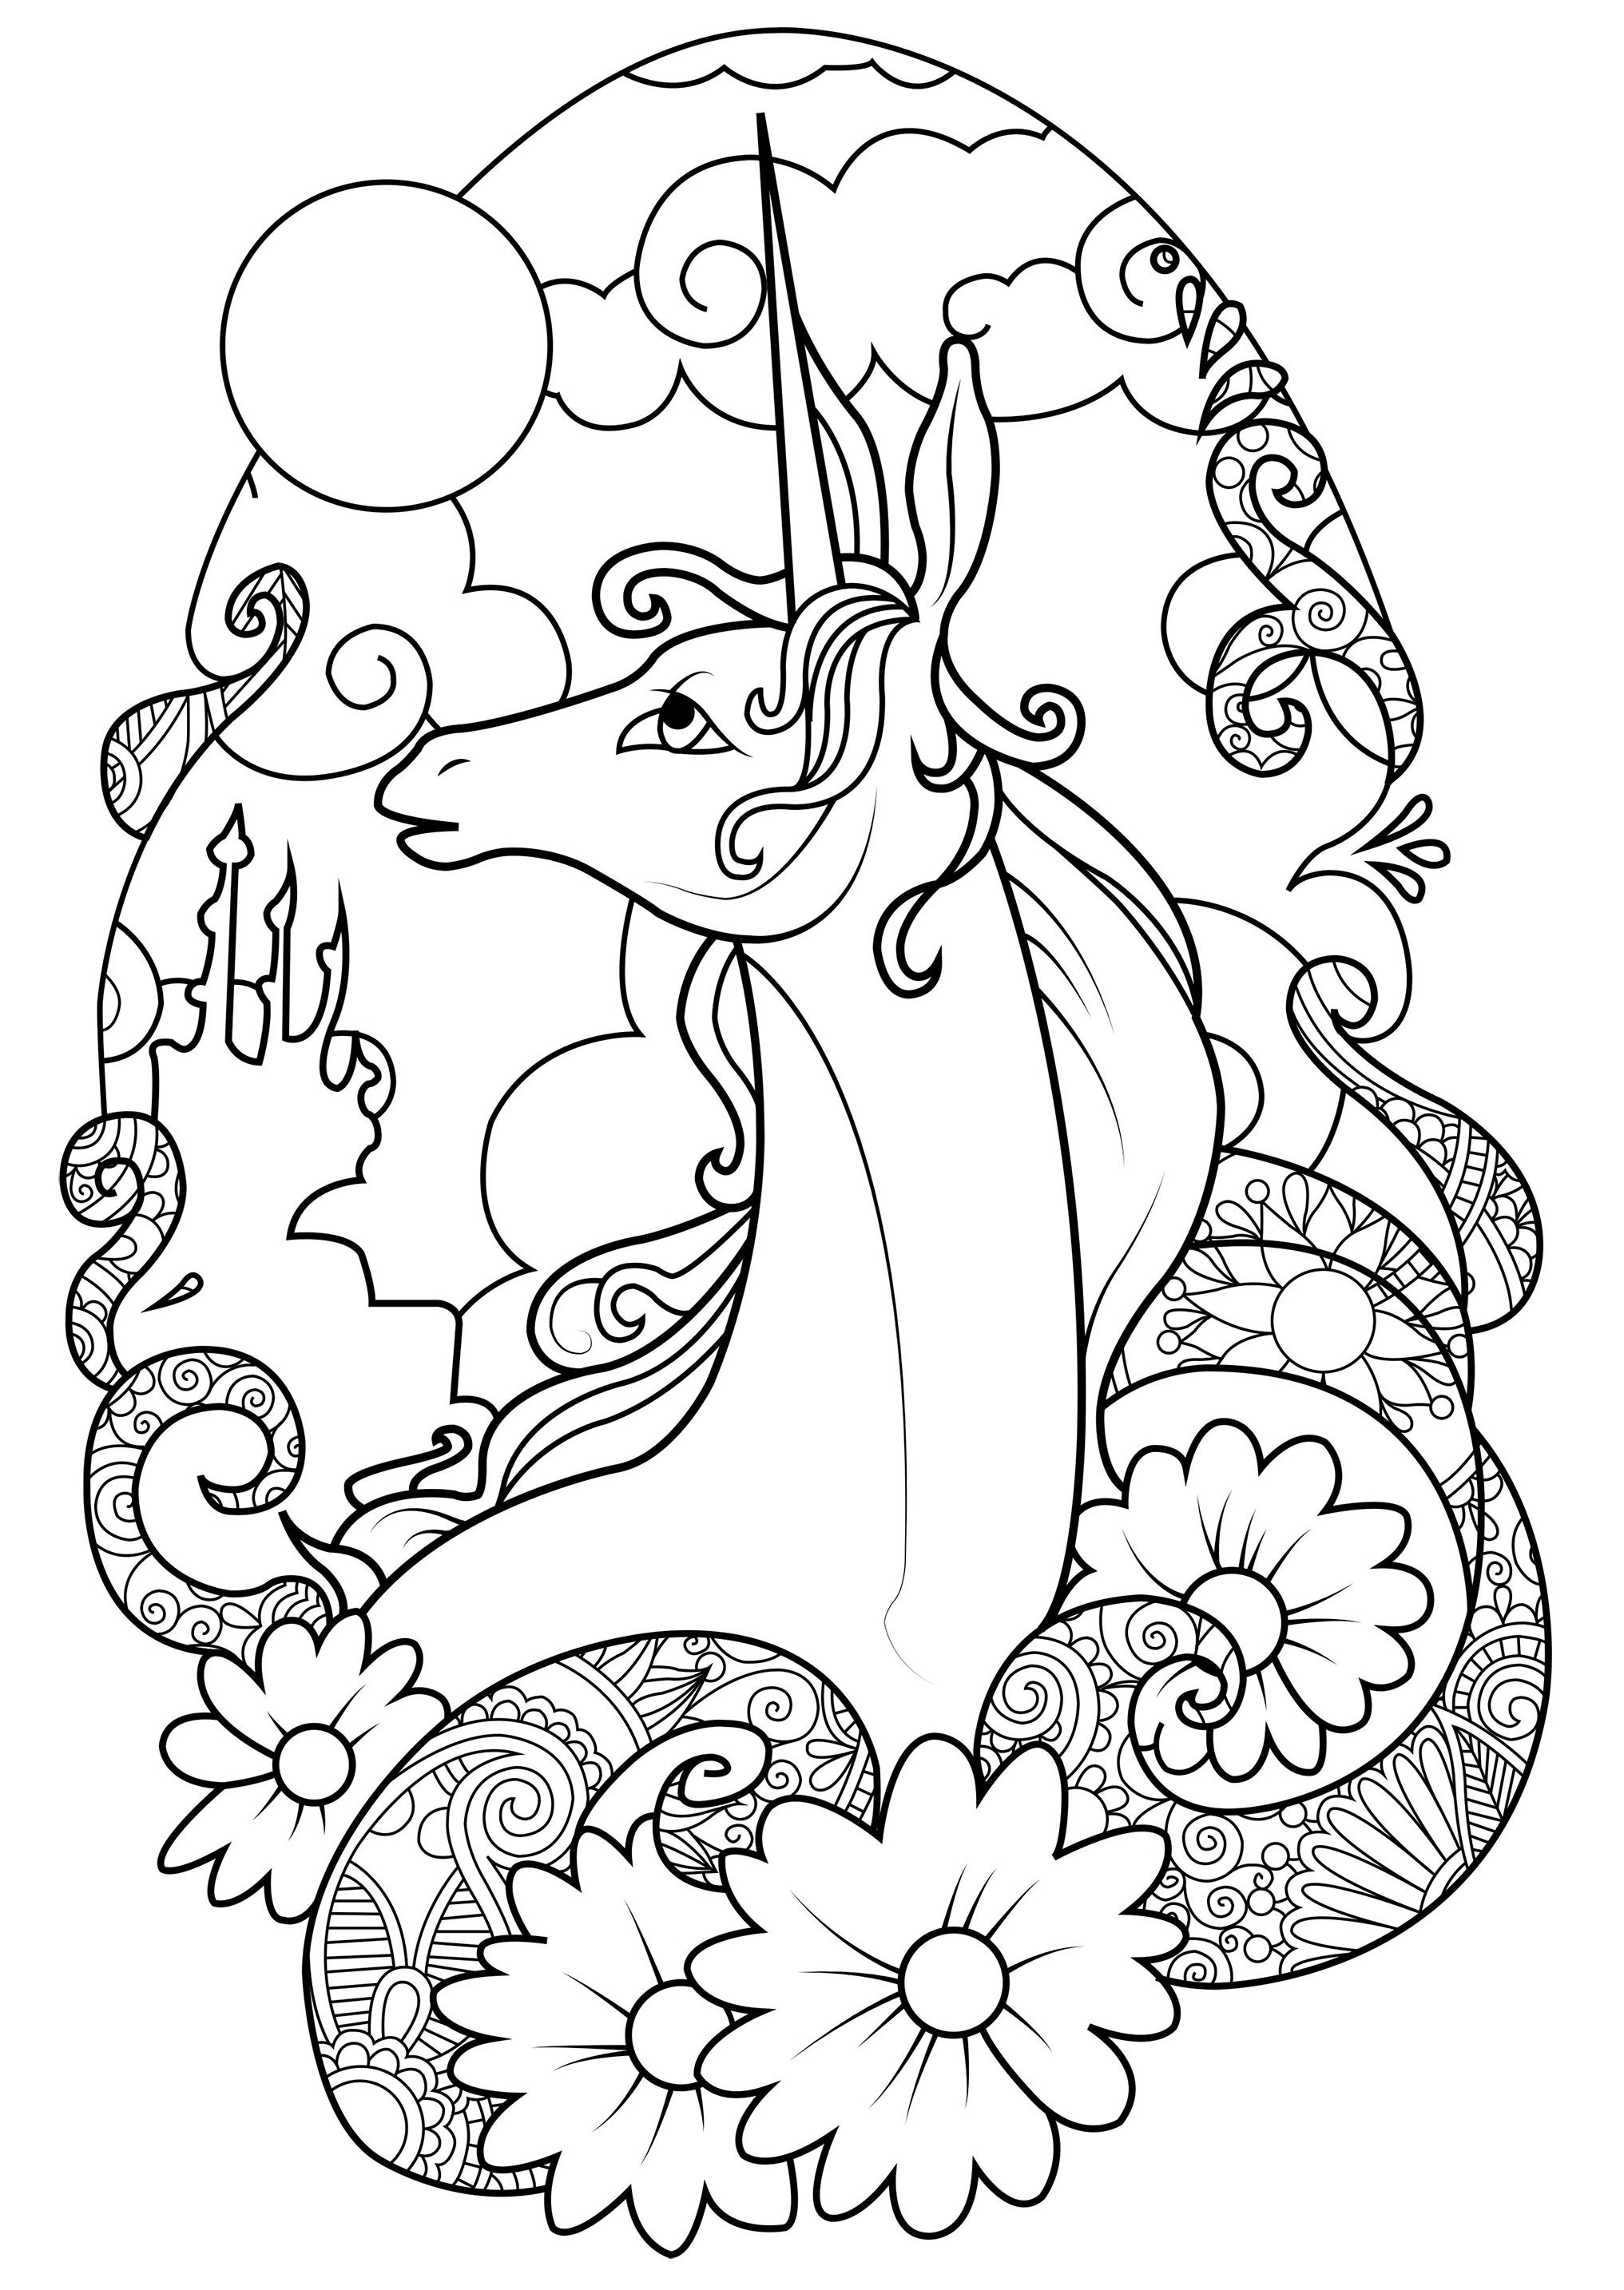 Unicorns Coloring Page Fairy Unicorn Coloring Page